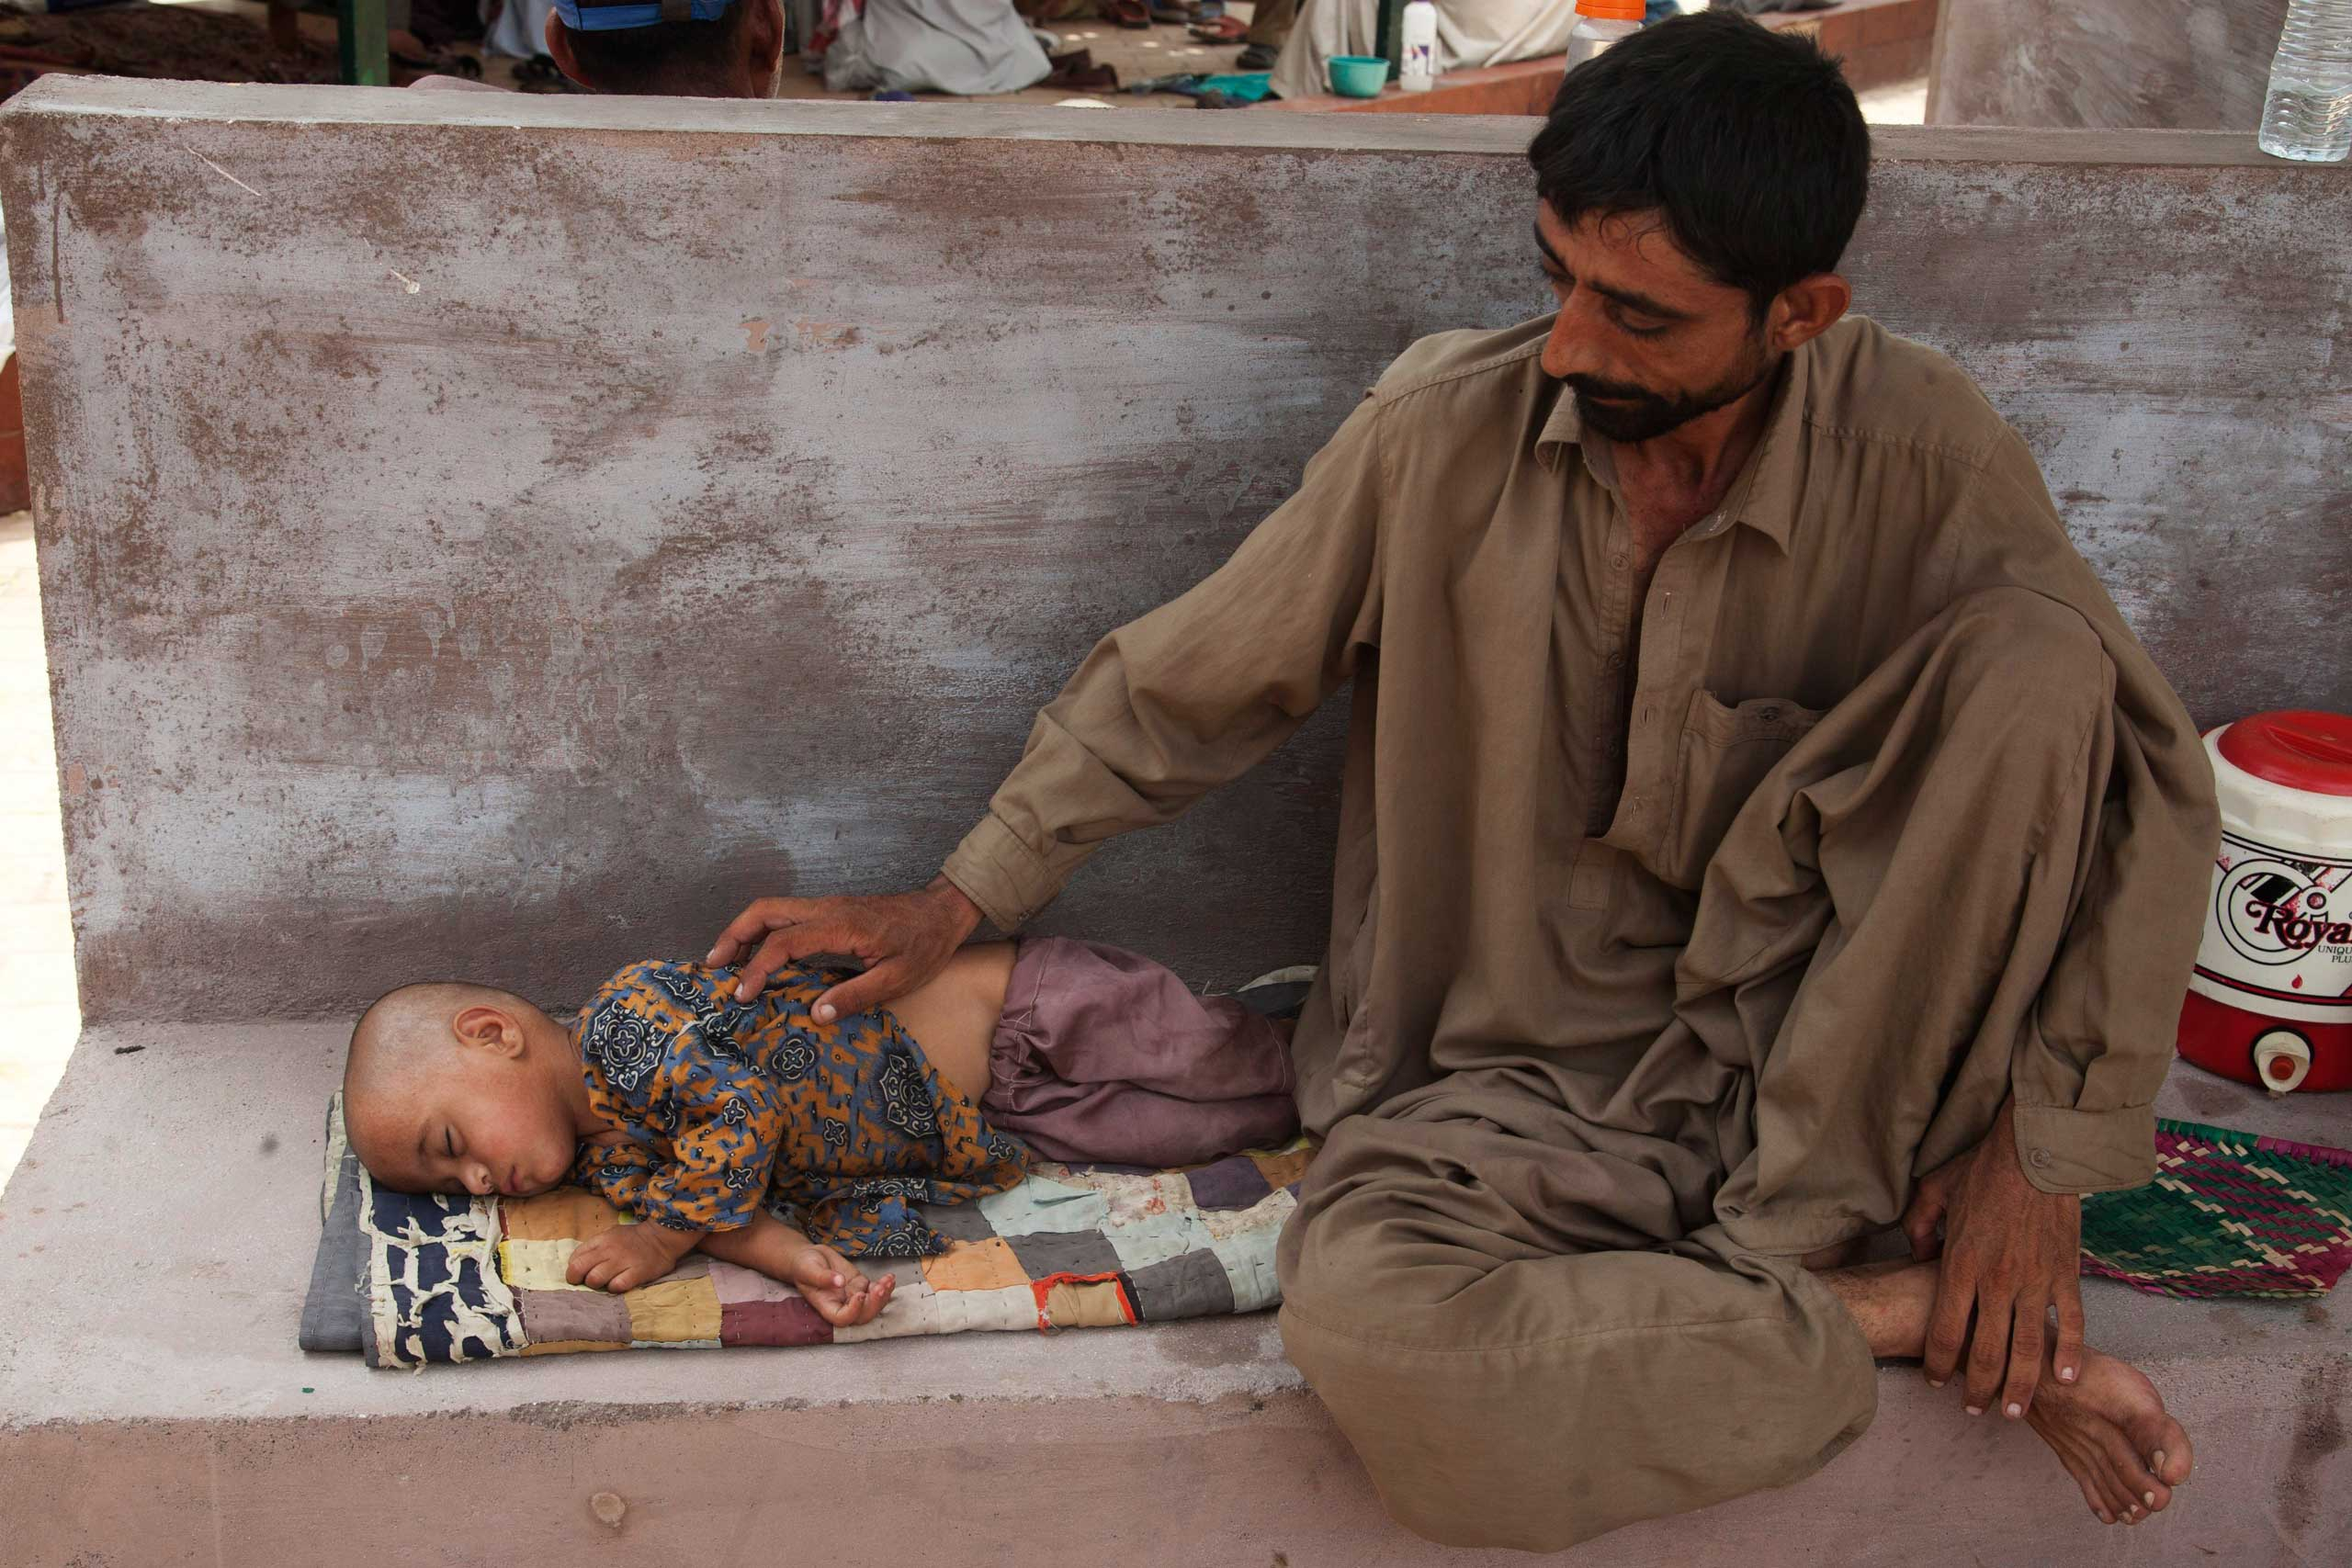 A man with his daughter who suffers from dehydration due to extreme weather waits for a medical help outside a ward at a child hospital in Karachi, Pakistan, on June 24, 2015.